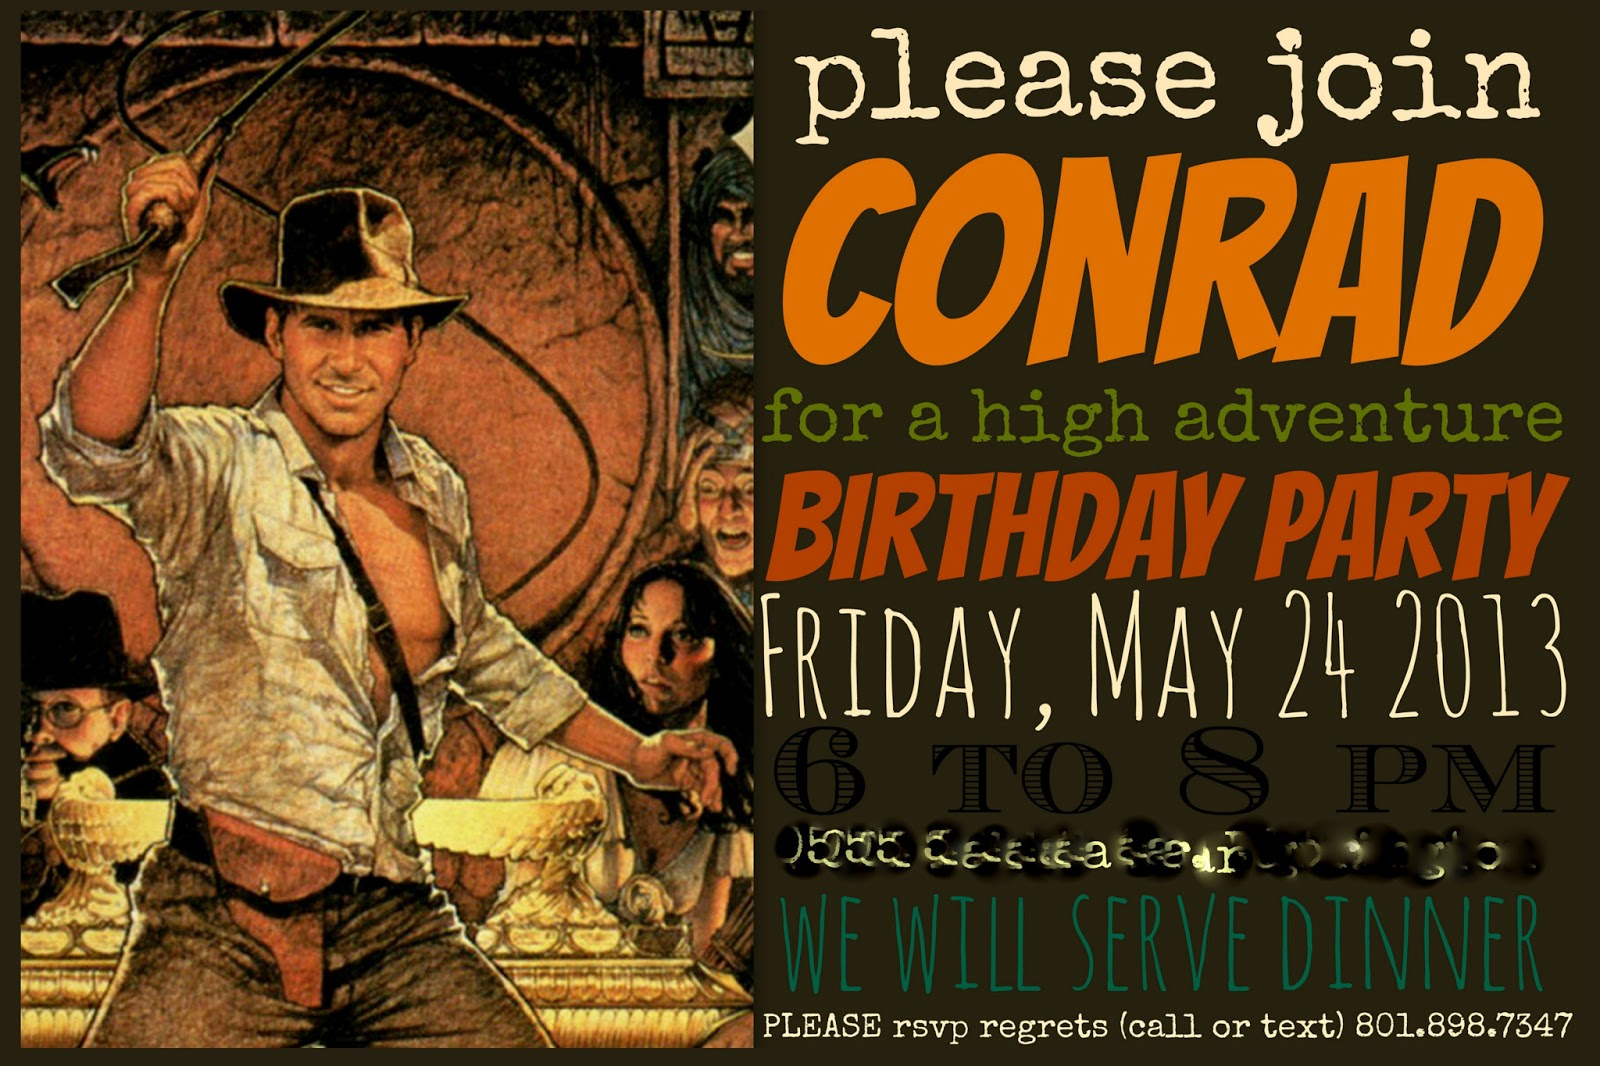 Birthday Invitation Near Me Restlessrisa: Indiana Jones Birthday Party